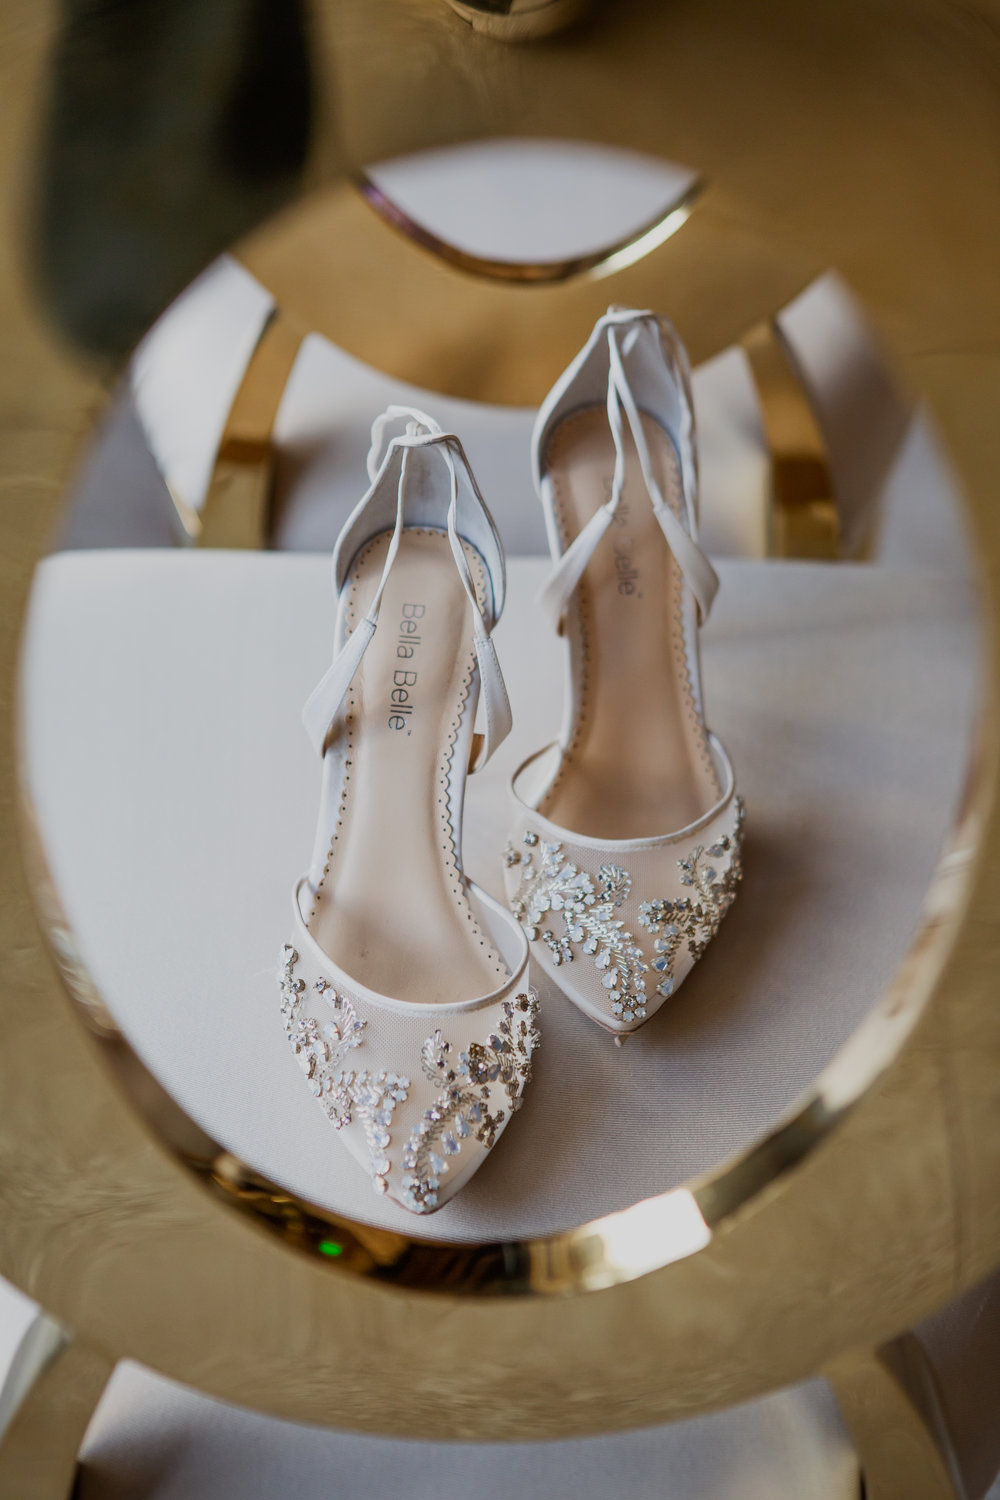 Bella Belle embroidered wedding shoes.  Las Vegas Wedding Planner & Event Designer  Andrea Eppolito Events  · Photography by  Adam Frazier Photo  · Video by  M Place Productions  · Floral & Decor by  DBD Las Vegas  · Venue  ARIA Primrose Ballroom  · Cigar Band by  Royal Cigar Company  and  Jason of Beverly Hills  · Beauty by  Glammed Up Las Vegas  · Dress by  Vera Wang  · Salon  Couture Bride Las Vegas  · Shoes  Bella Belle Shoes  · Bride  Katrina May Armenta  · Groom  Lucas Cuevas